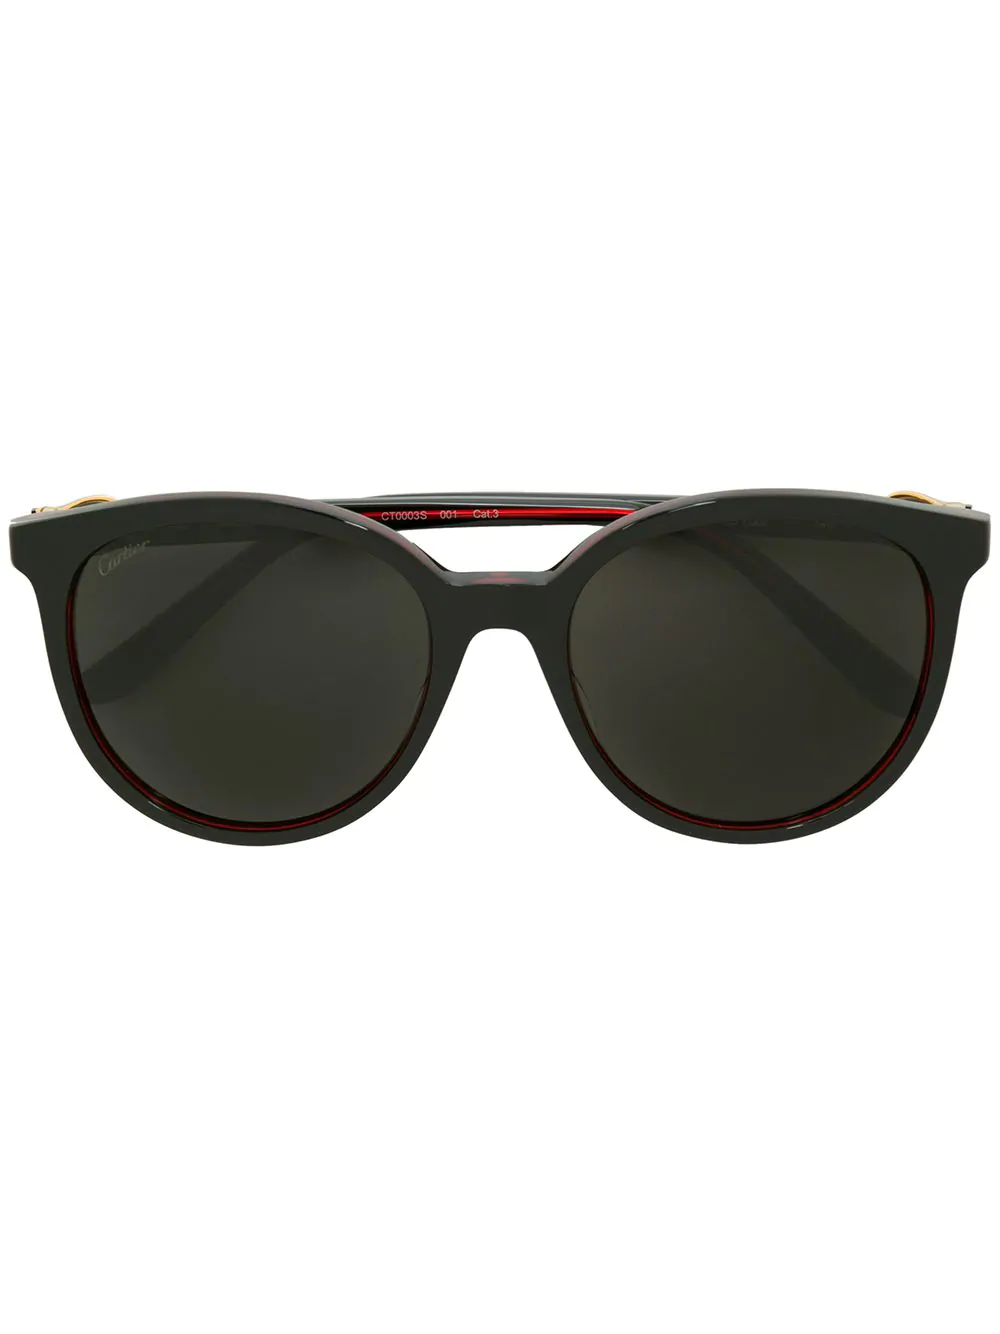 Cartier tinted oversized sunglasses